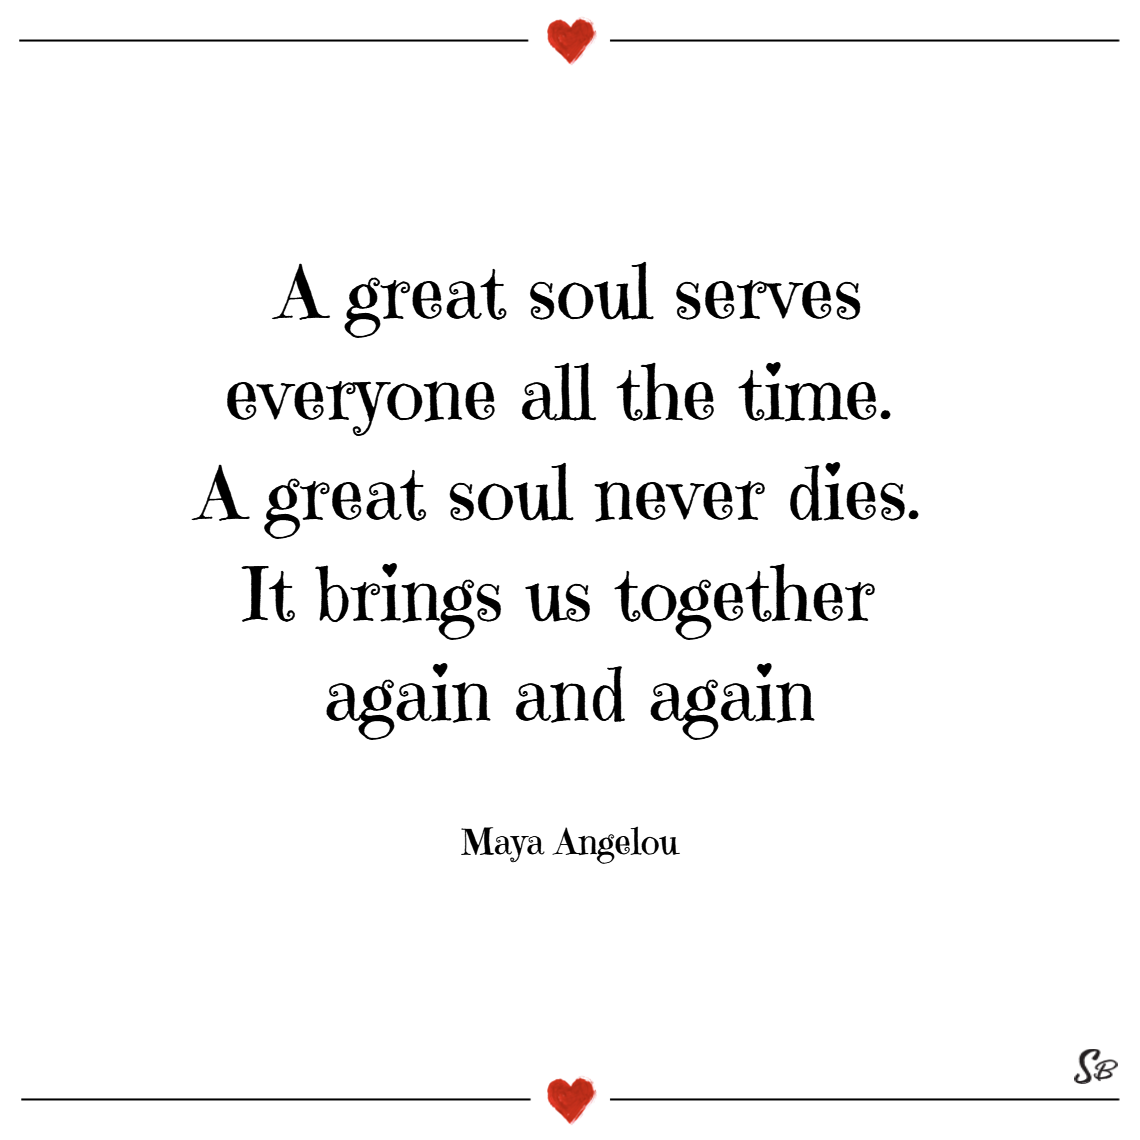 A great soul serves everyone all the time. a great soul never dies. it brings us together again and again. – maya angelou sympathy quotes